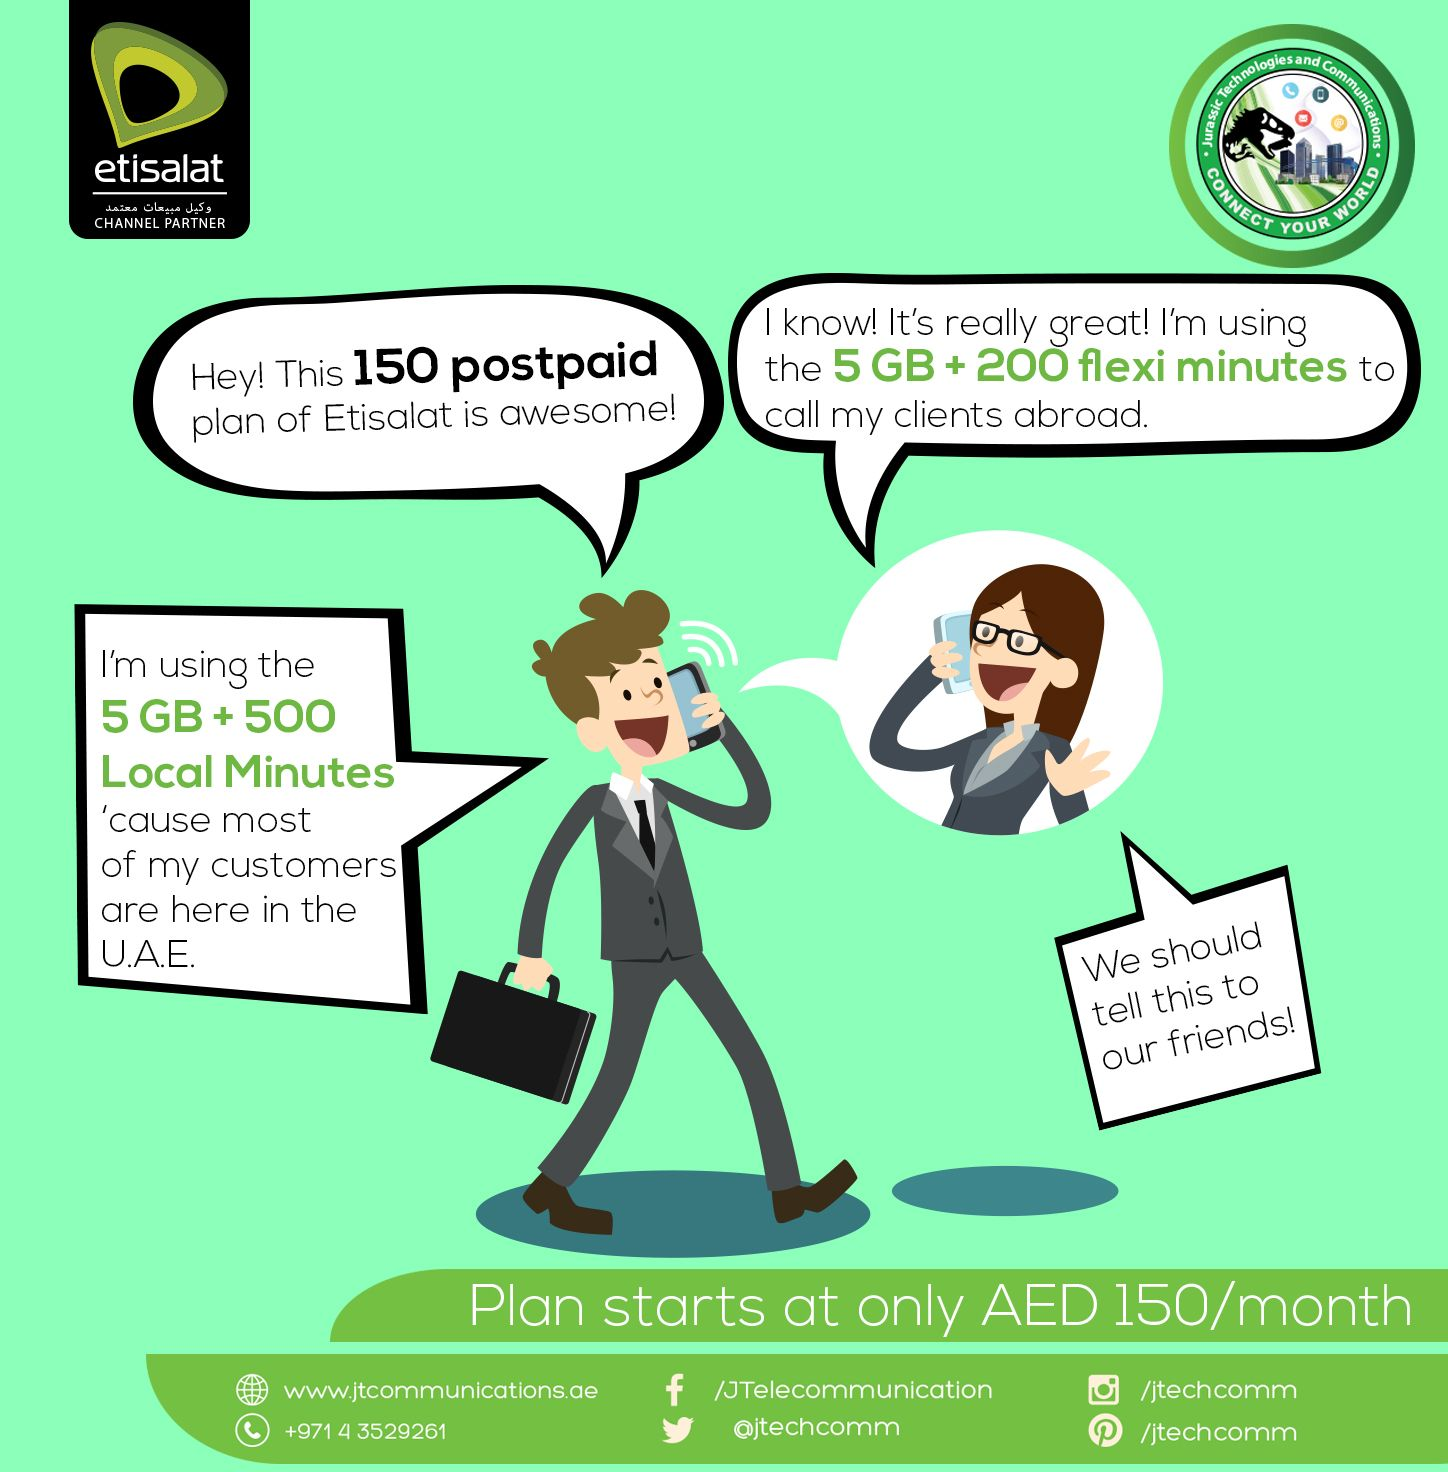 With Etisalat's 150 Postpaid Plan, you have two choices